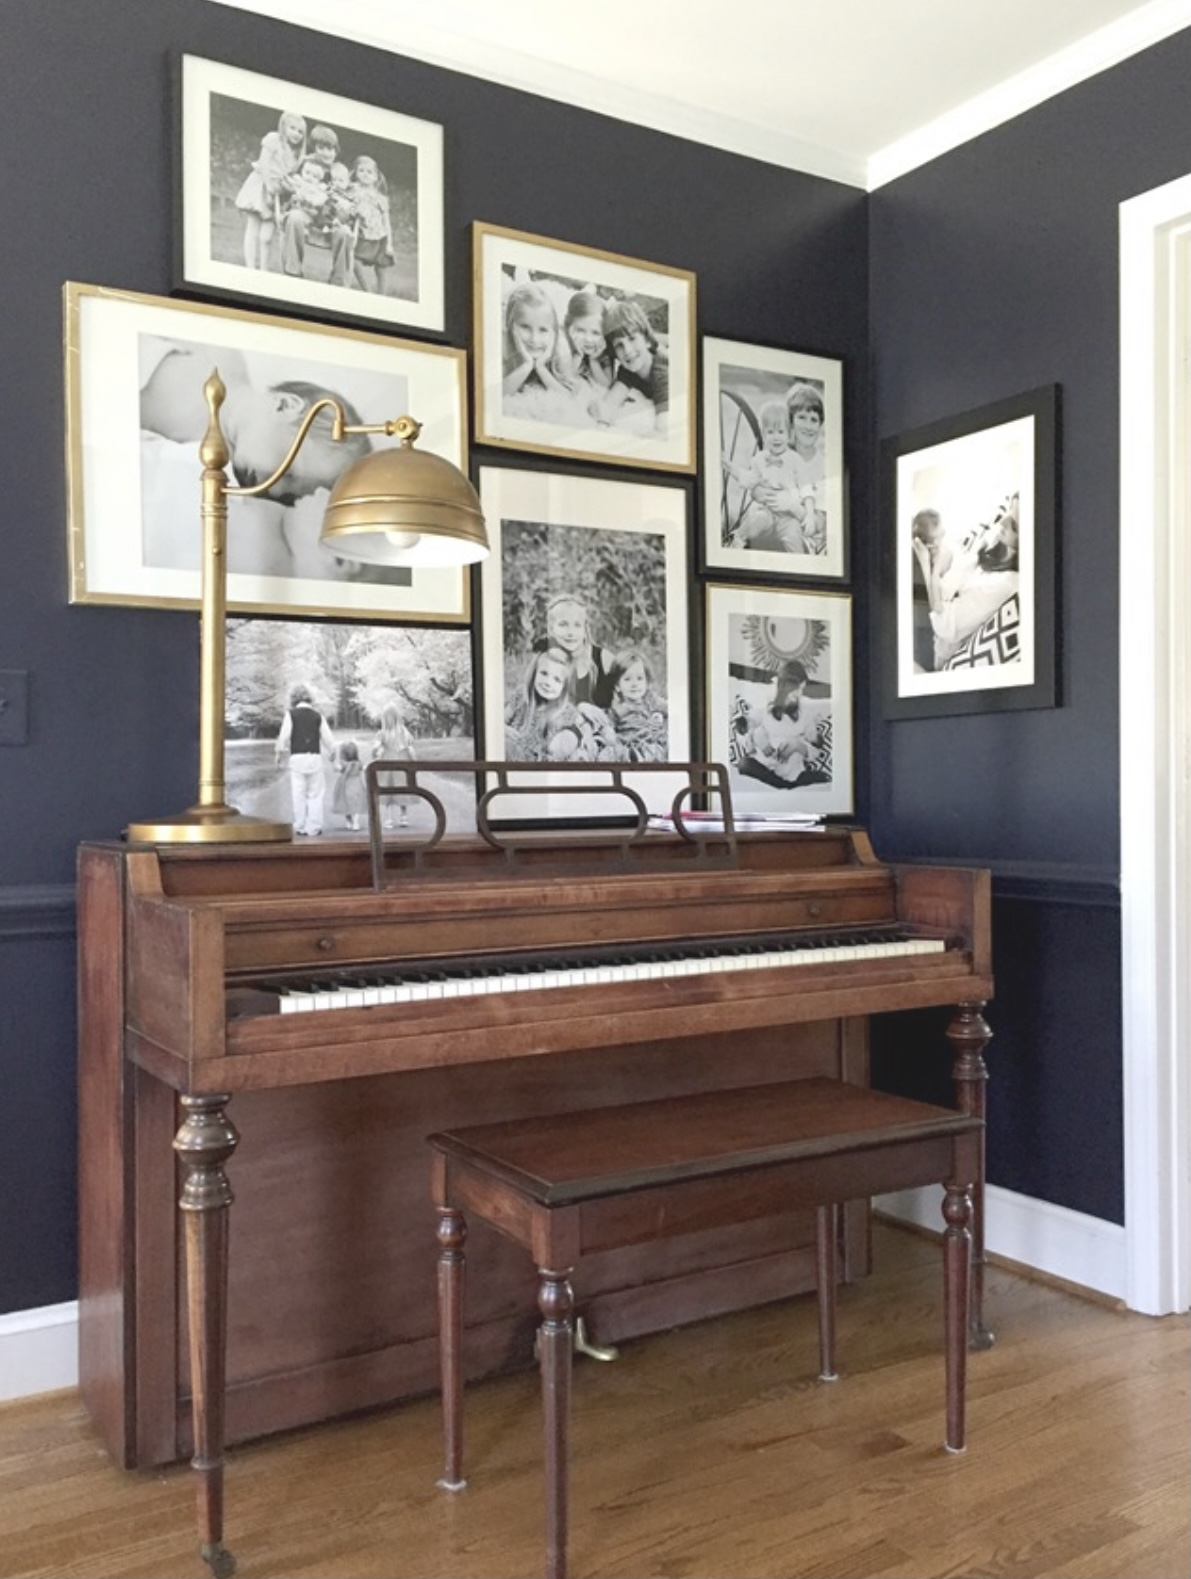 decorating-over-piano-gallery-wall